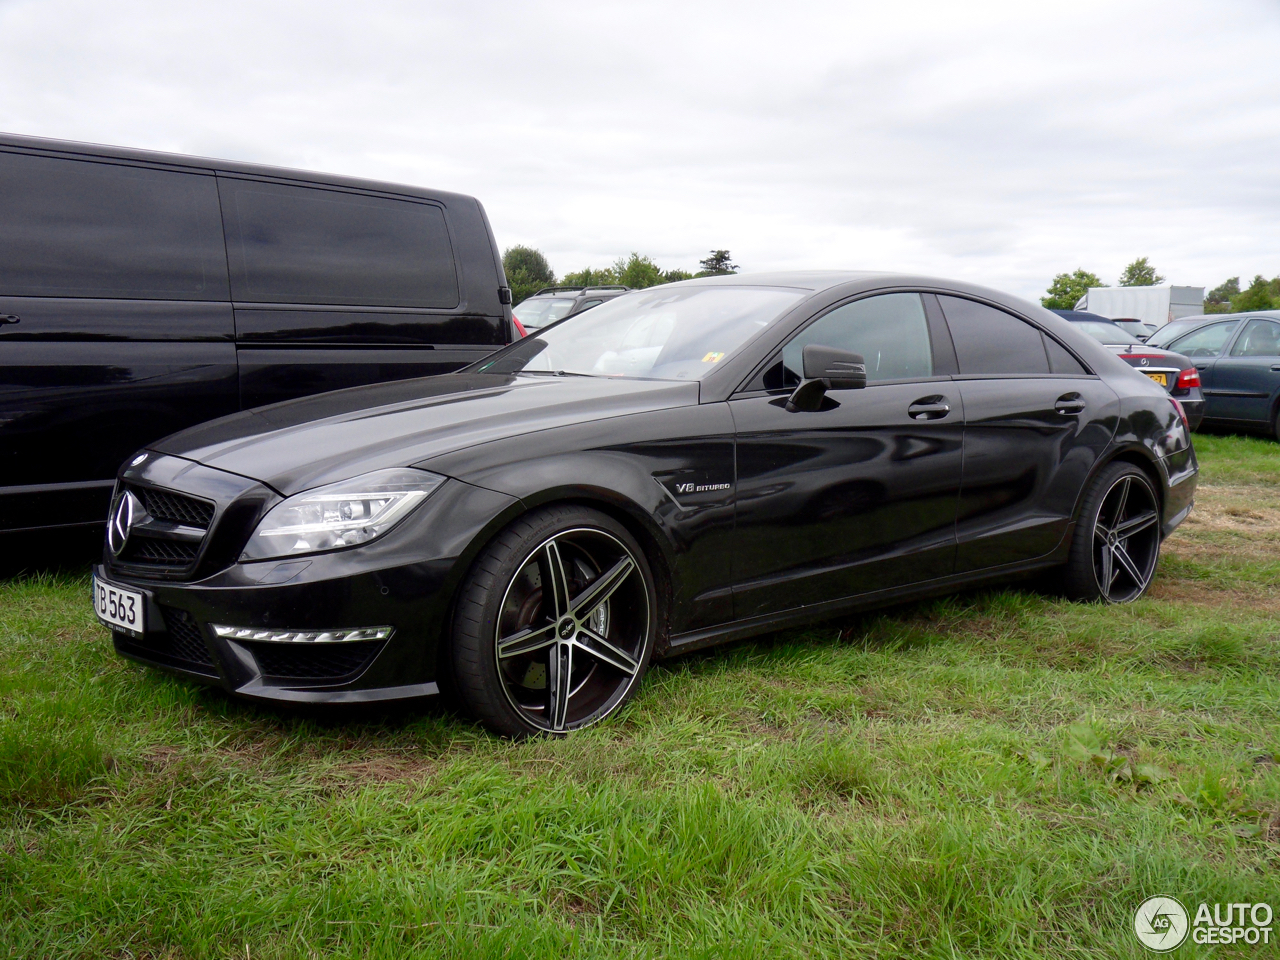 Mercedes benz cls 63 amg c218 7 august 2016 autogespot for Mercedes benz cls 63 amg price